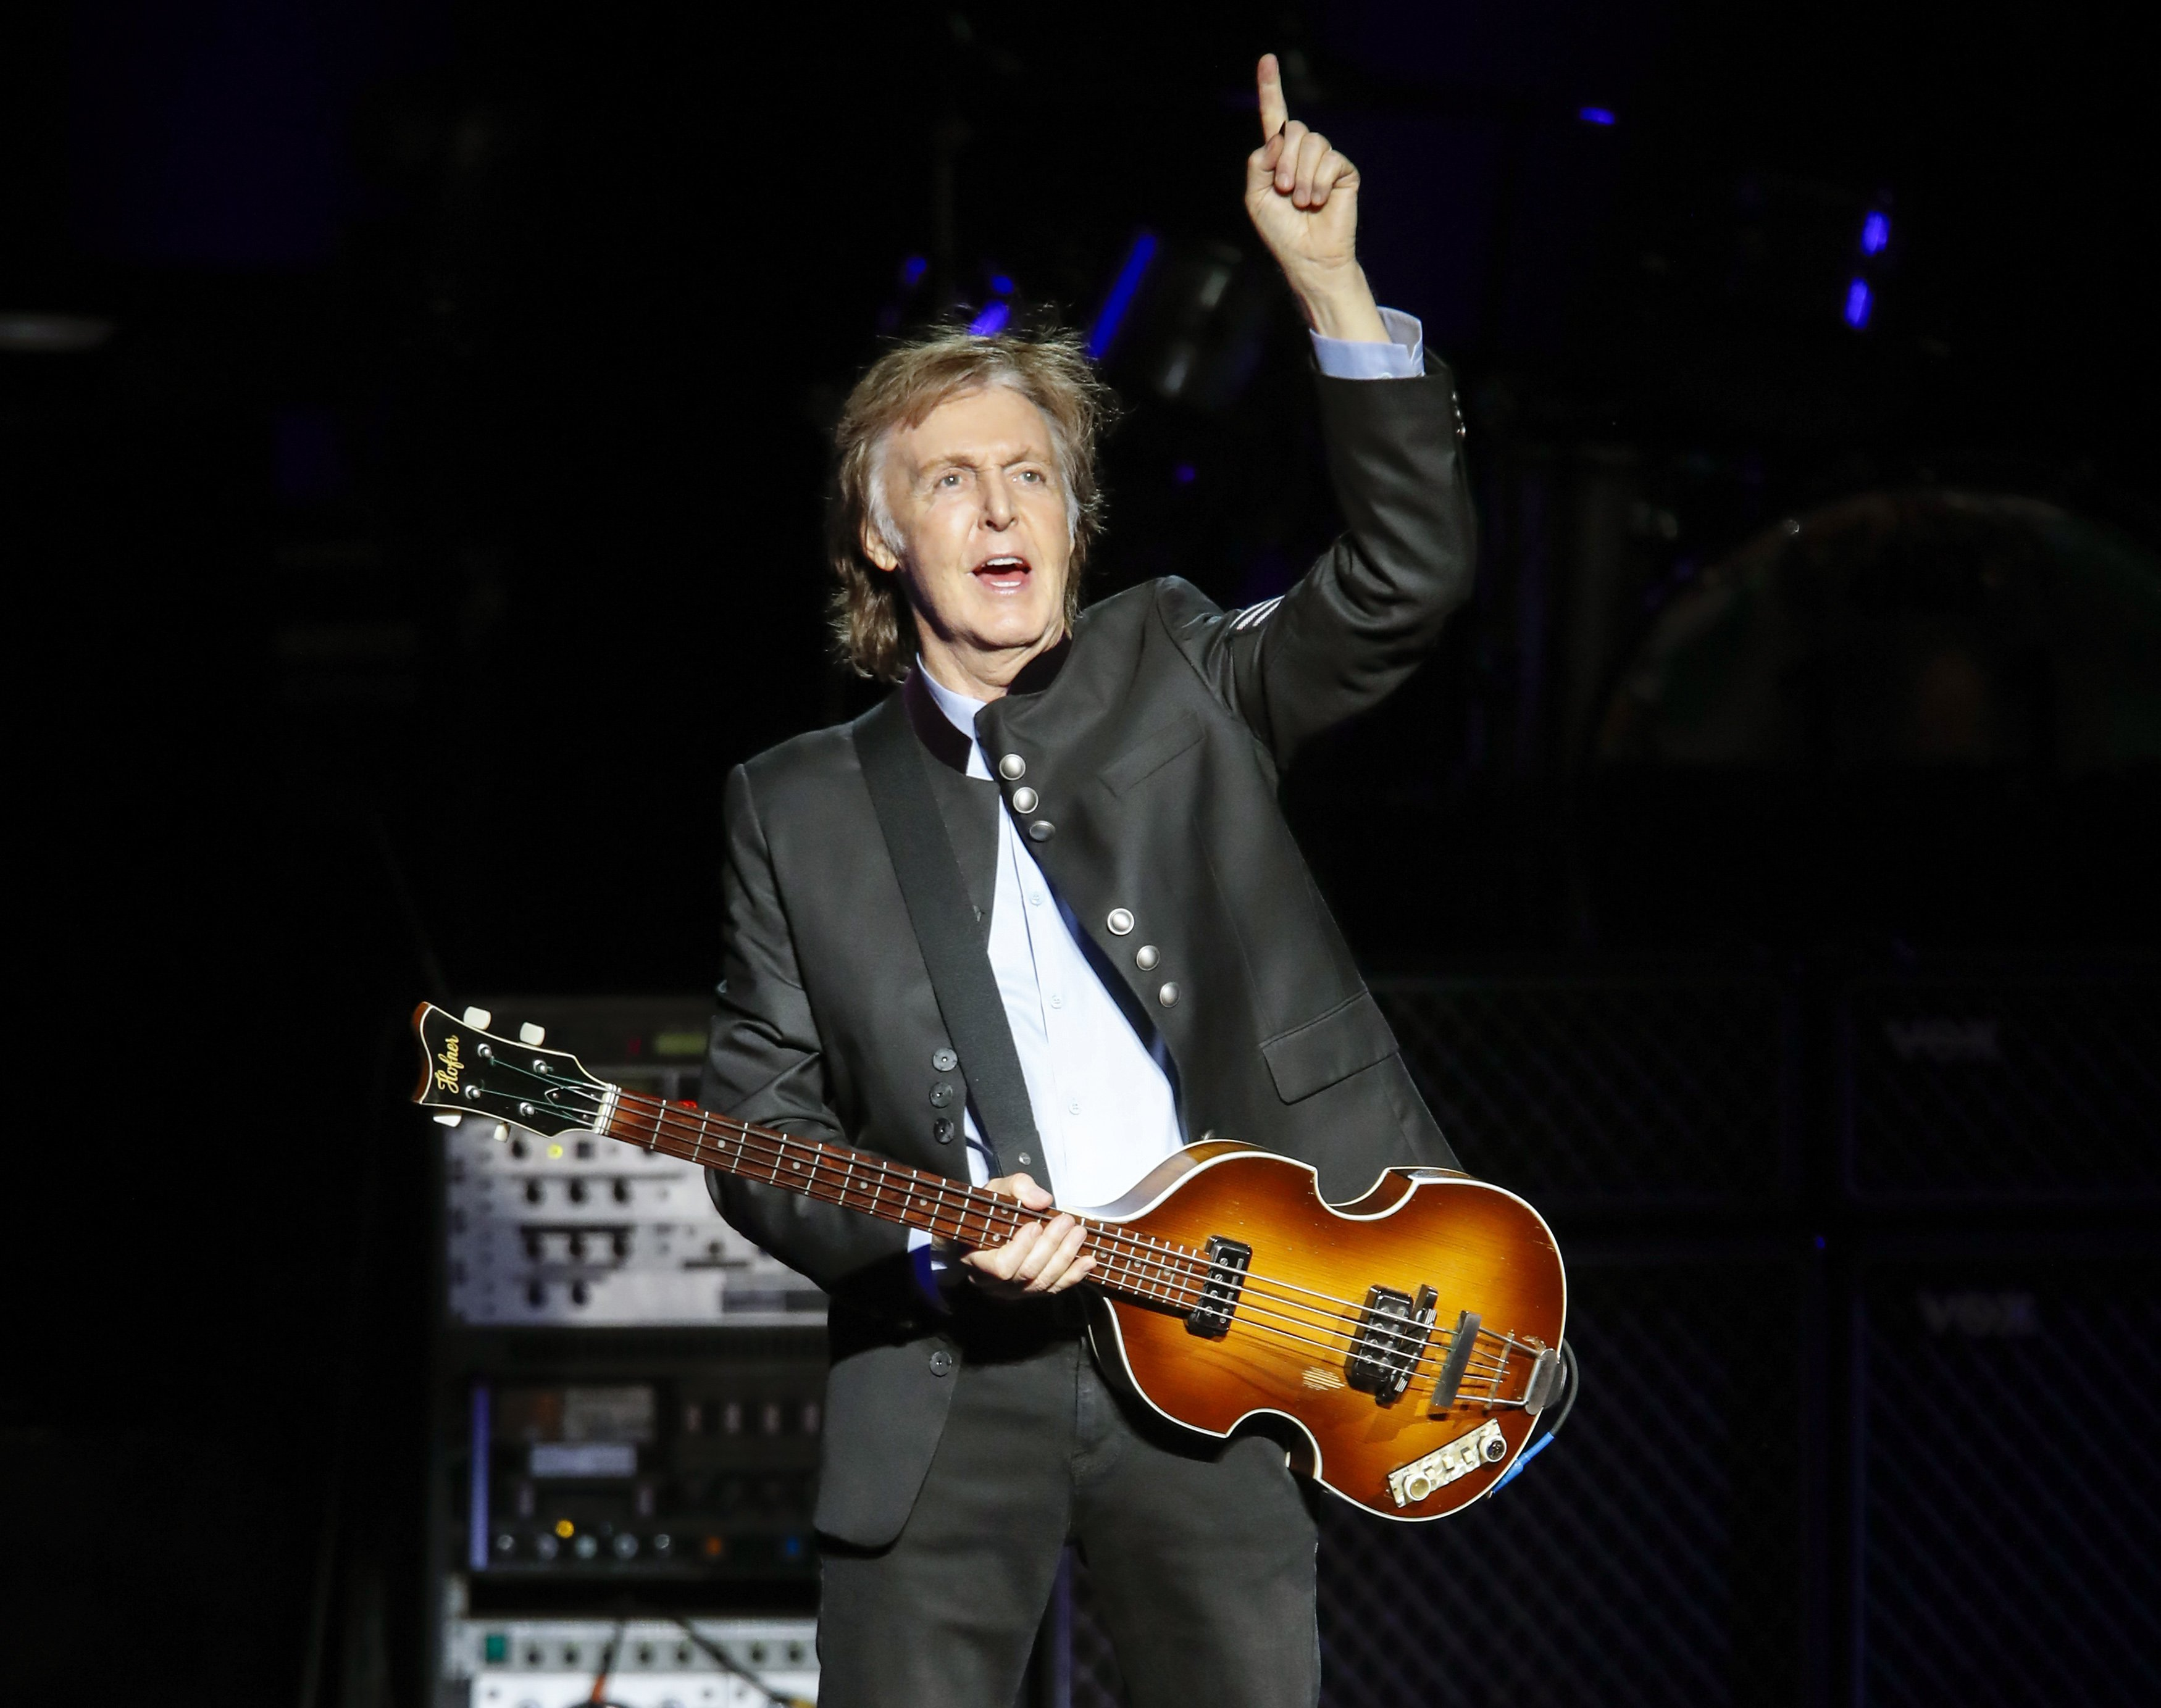 Paul McCartney to headline at Glastonbury 2020, organizer confirms